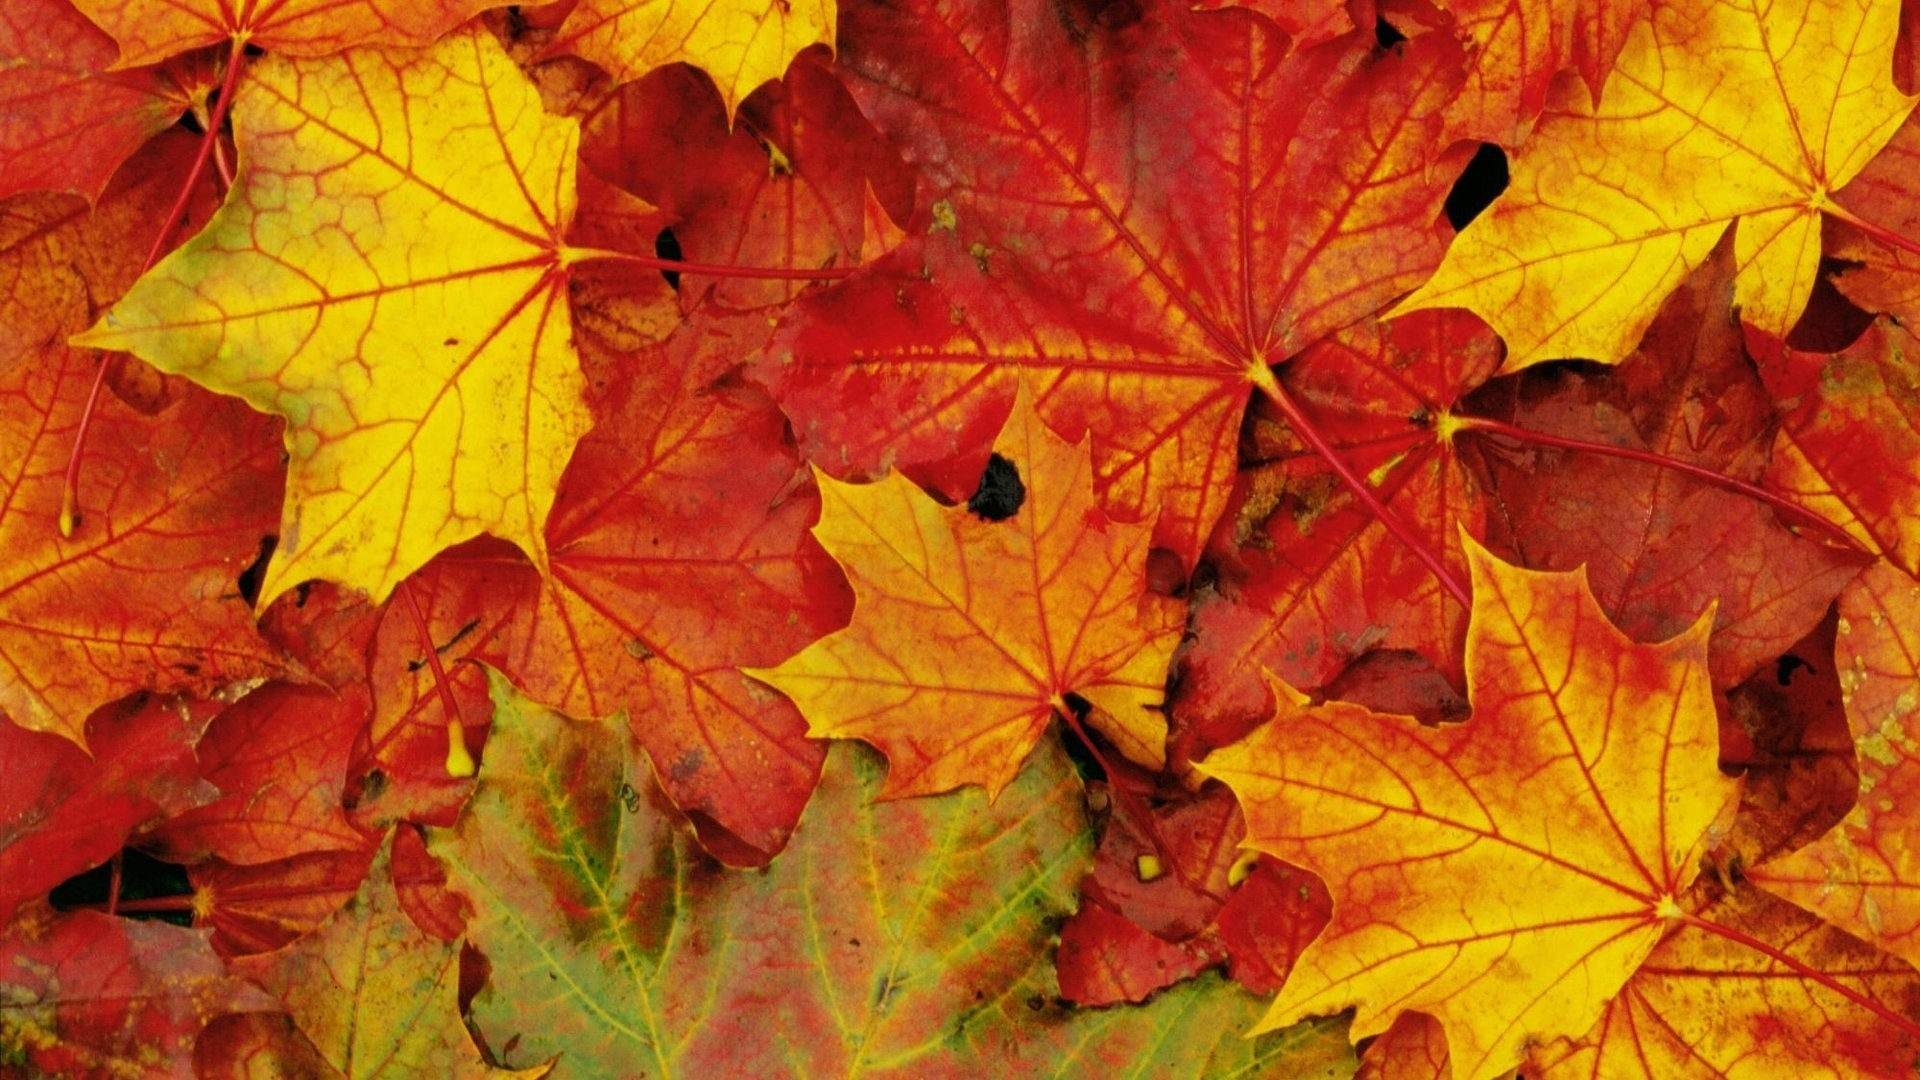 Wallpaper nature flower leave fall flashlight awesome 50